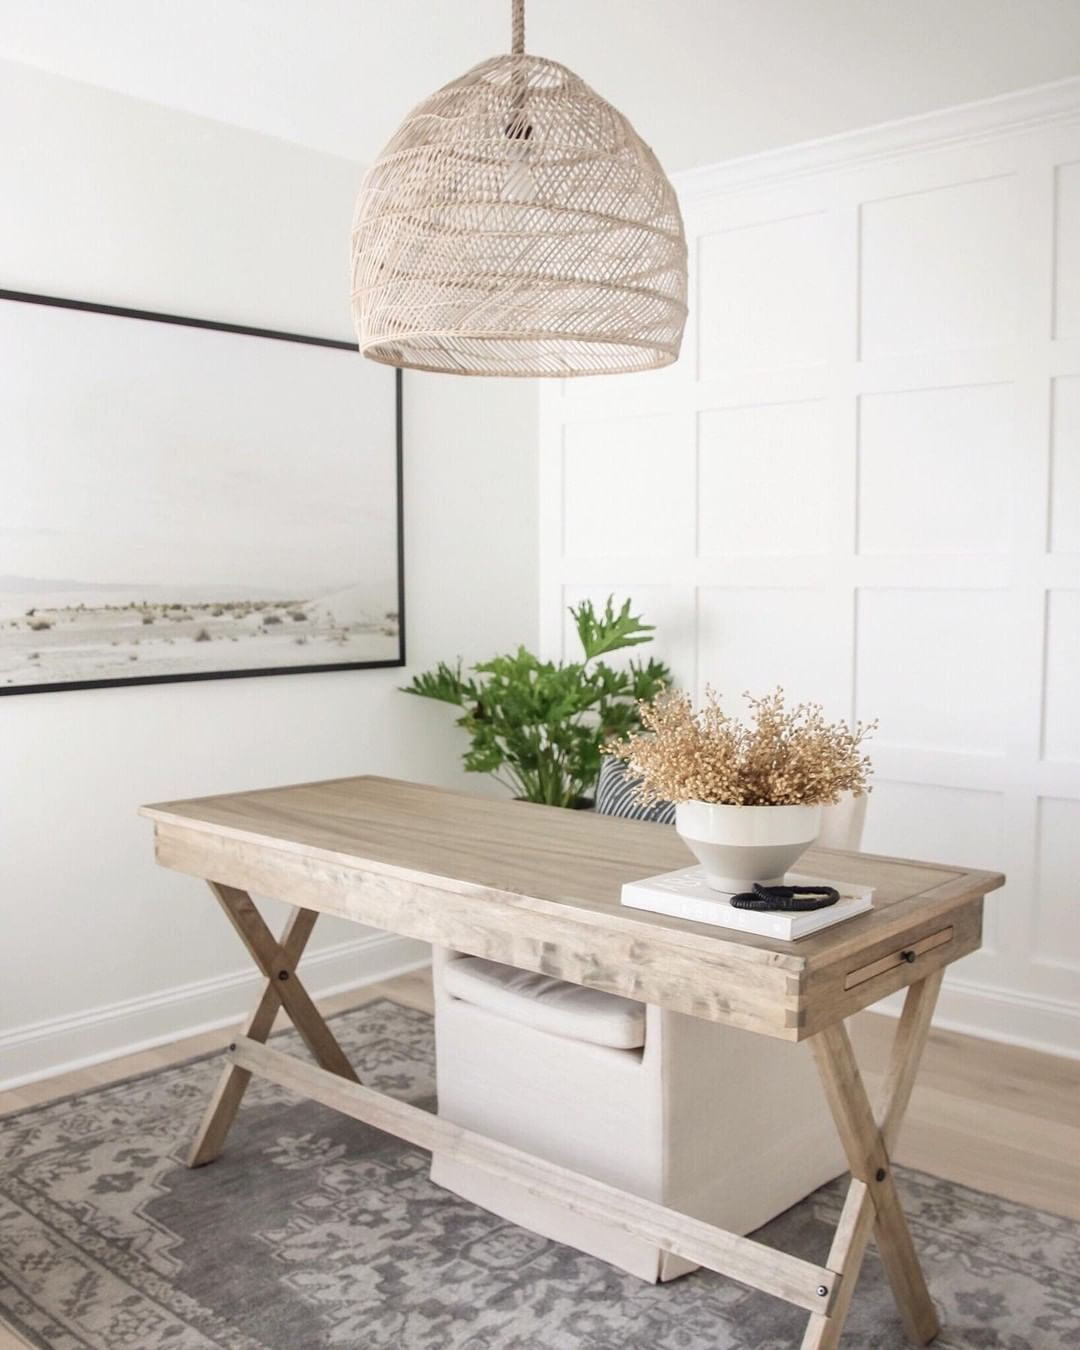 World Market On Instagram Home Office Goals Our Campaign Desk Looks Stunning In Blushingboho S Space Link In P In 2020 Campaign Desk Home Office White Desk Decor